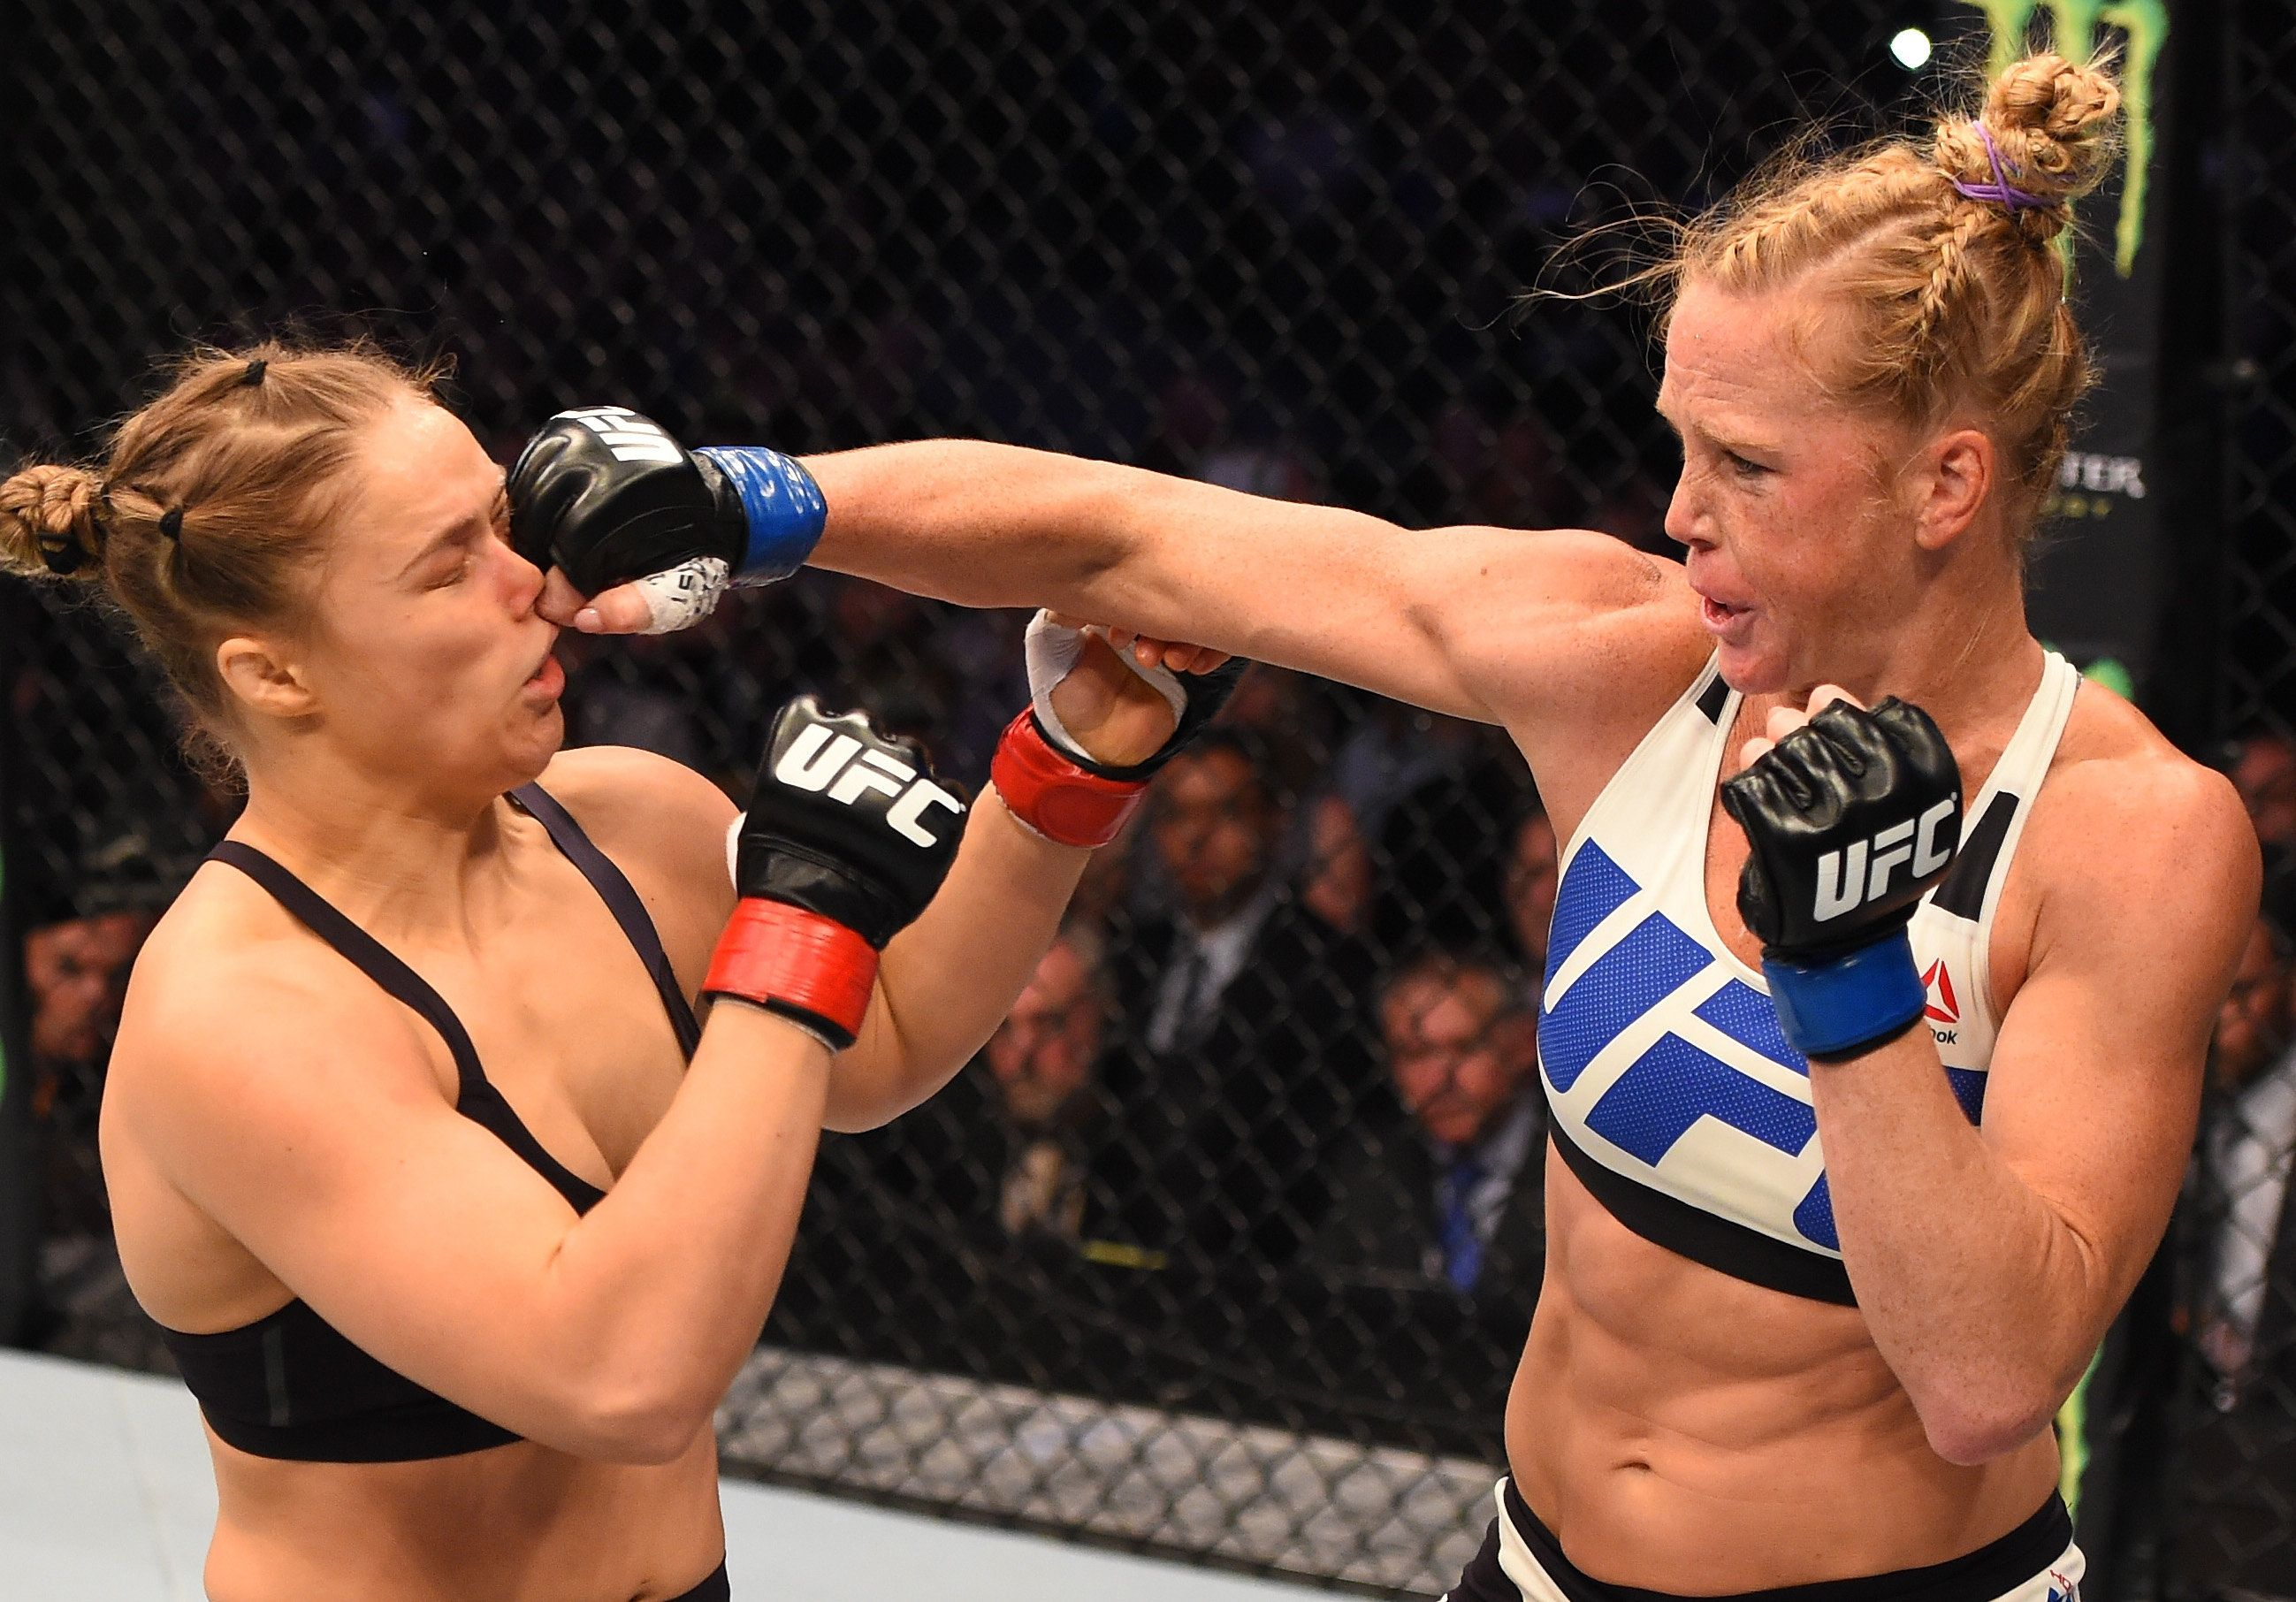 Holm punches Rousey in their UFC women's bantamweight championship bout in Melbourne, Australia.